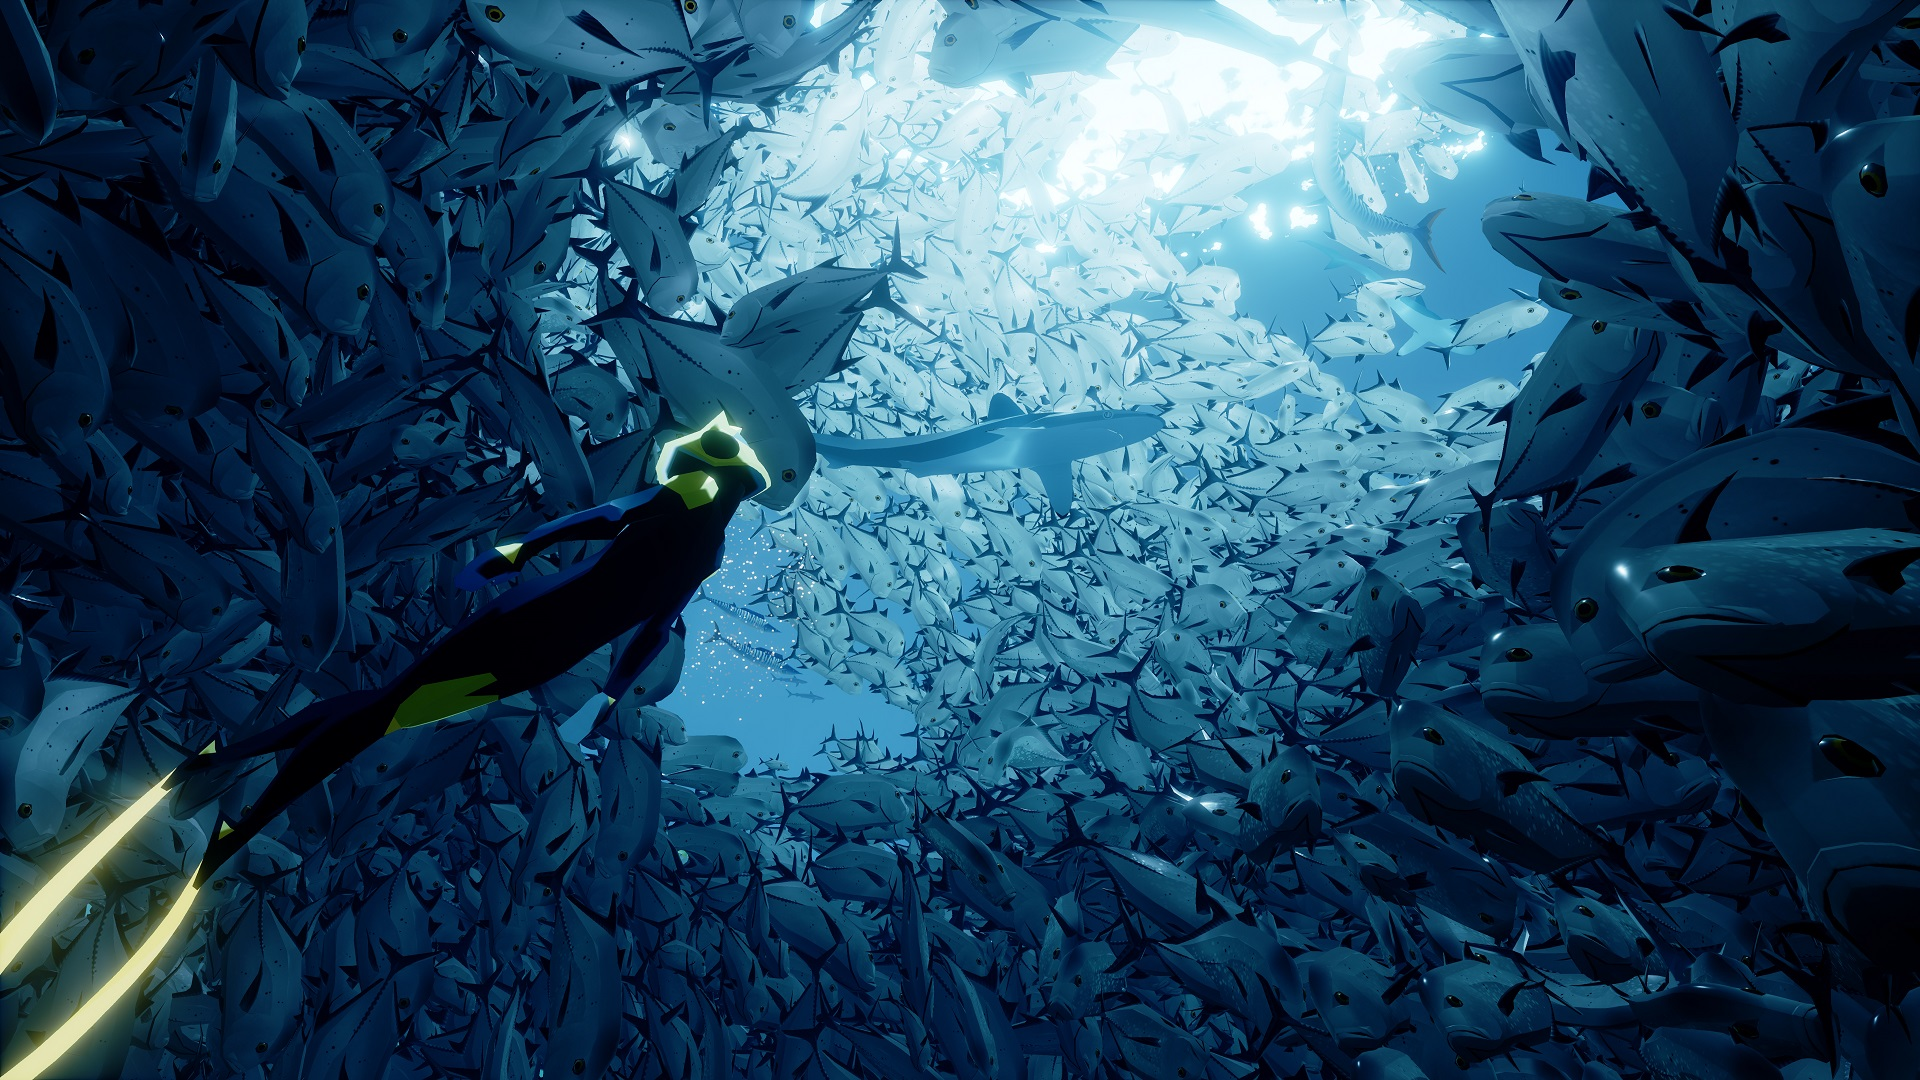 download abzu-steampunks singlelink iso cracked full version multi 8 language free for pc